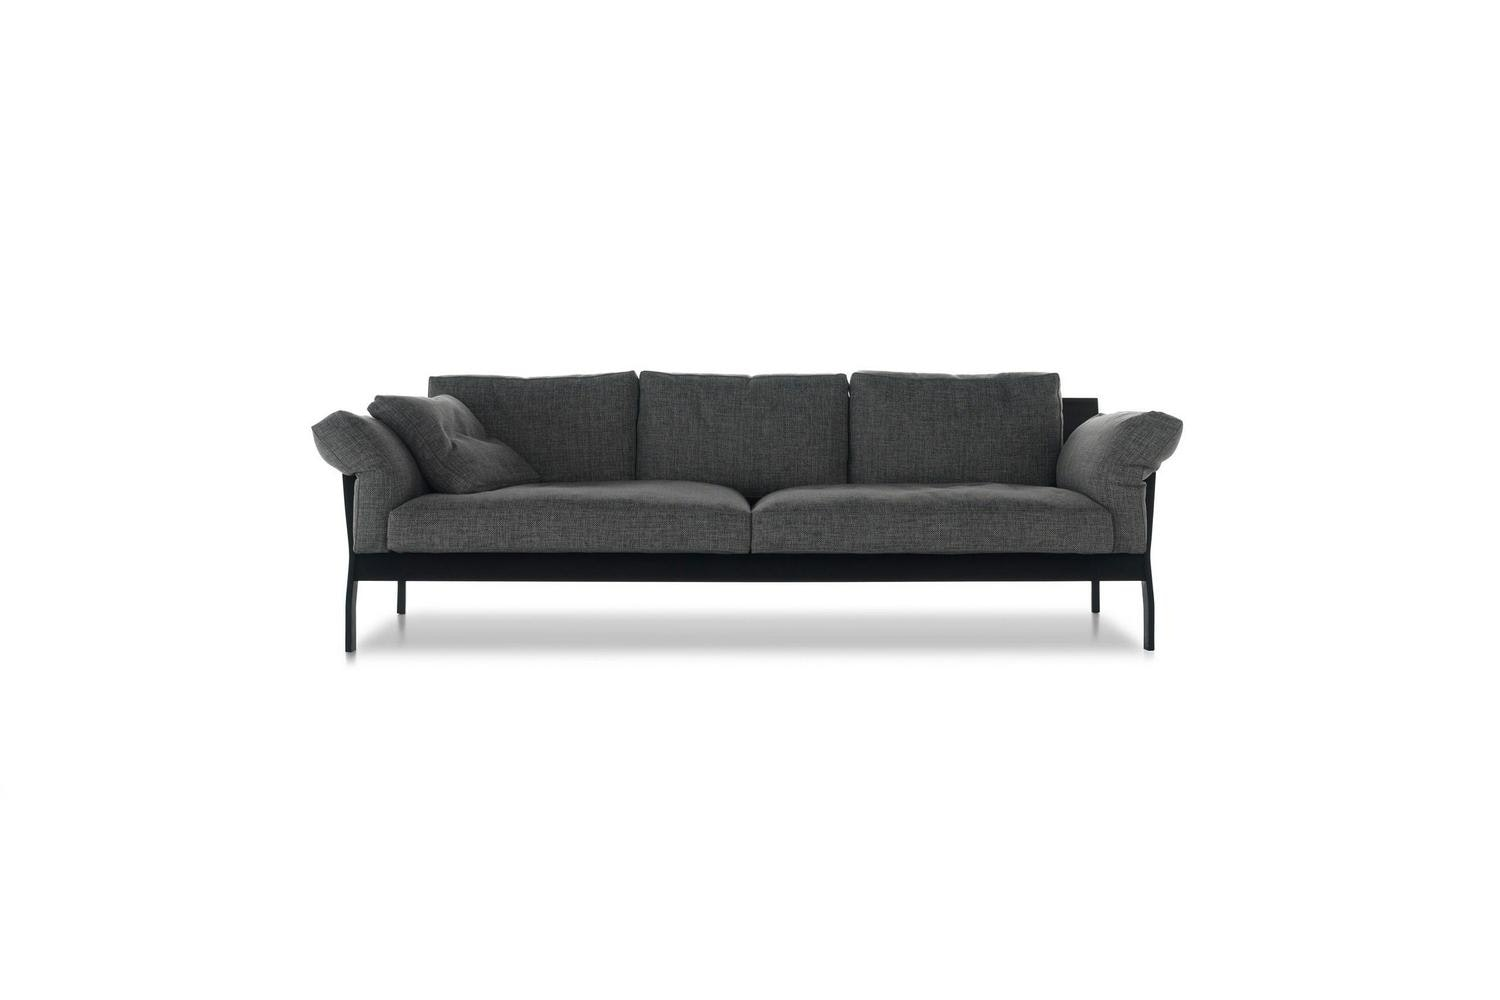 285 Eloro Sofa by Rodolfo Dordoni for Cassina